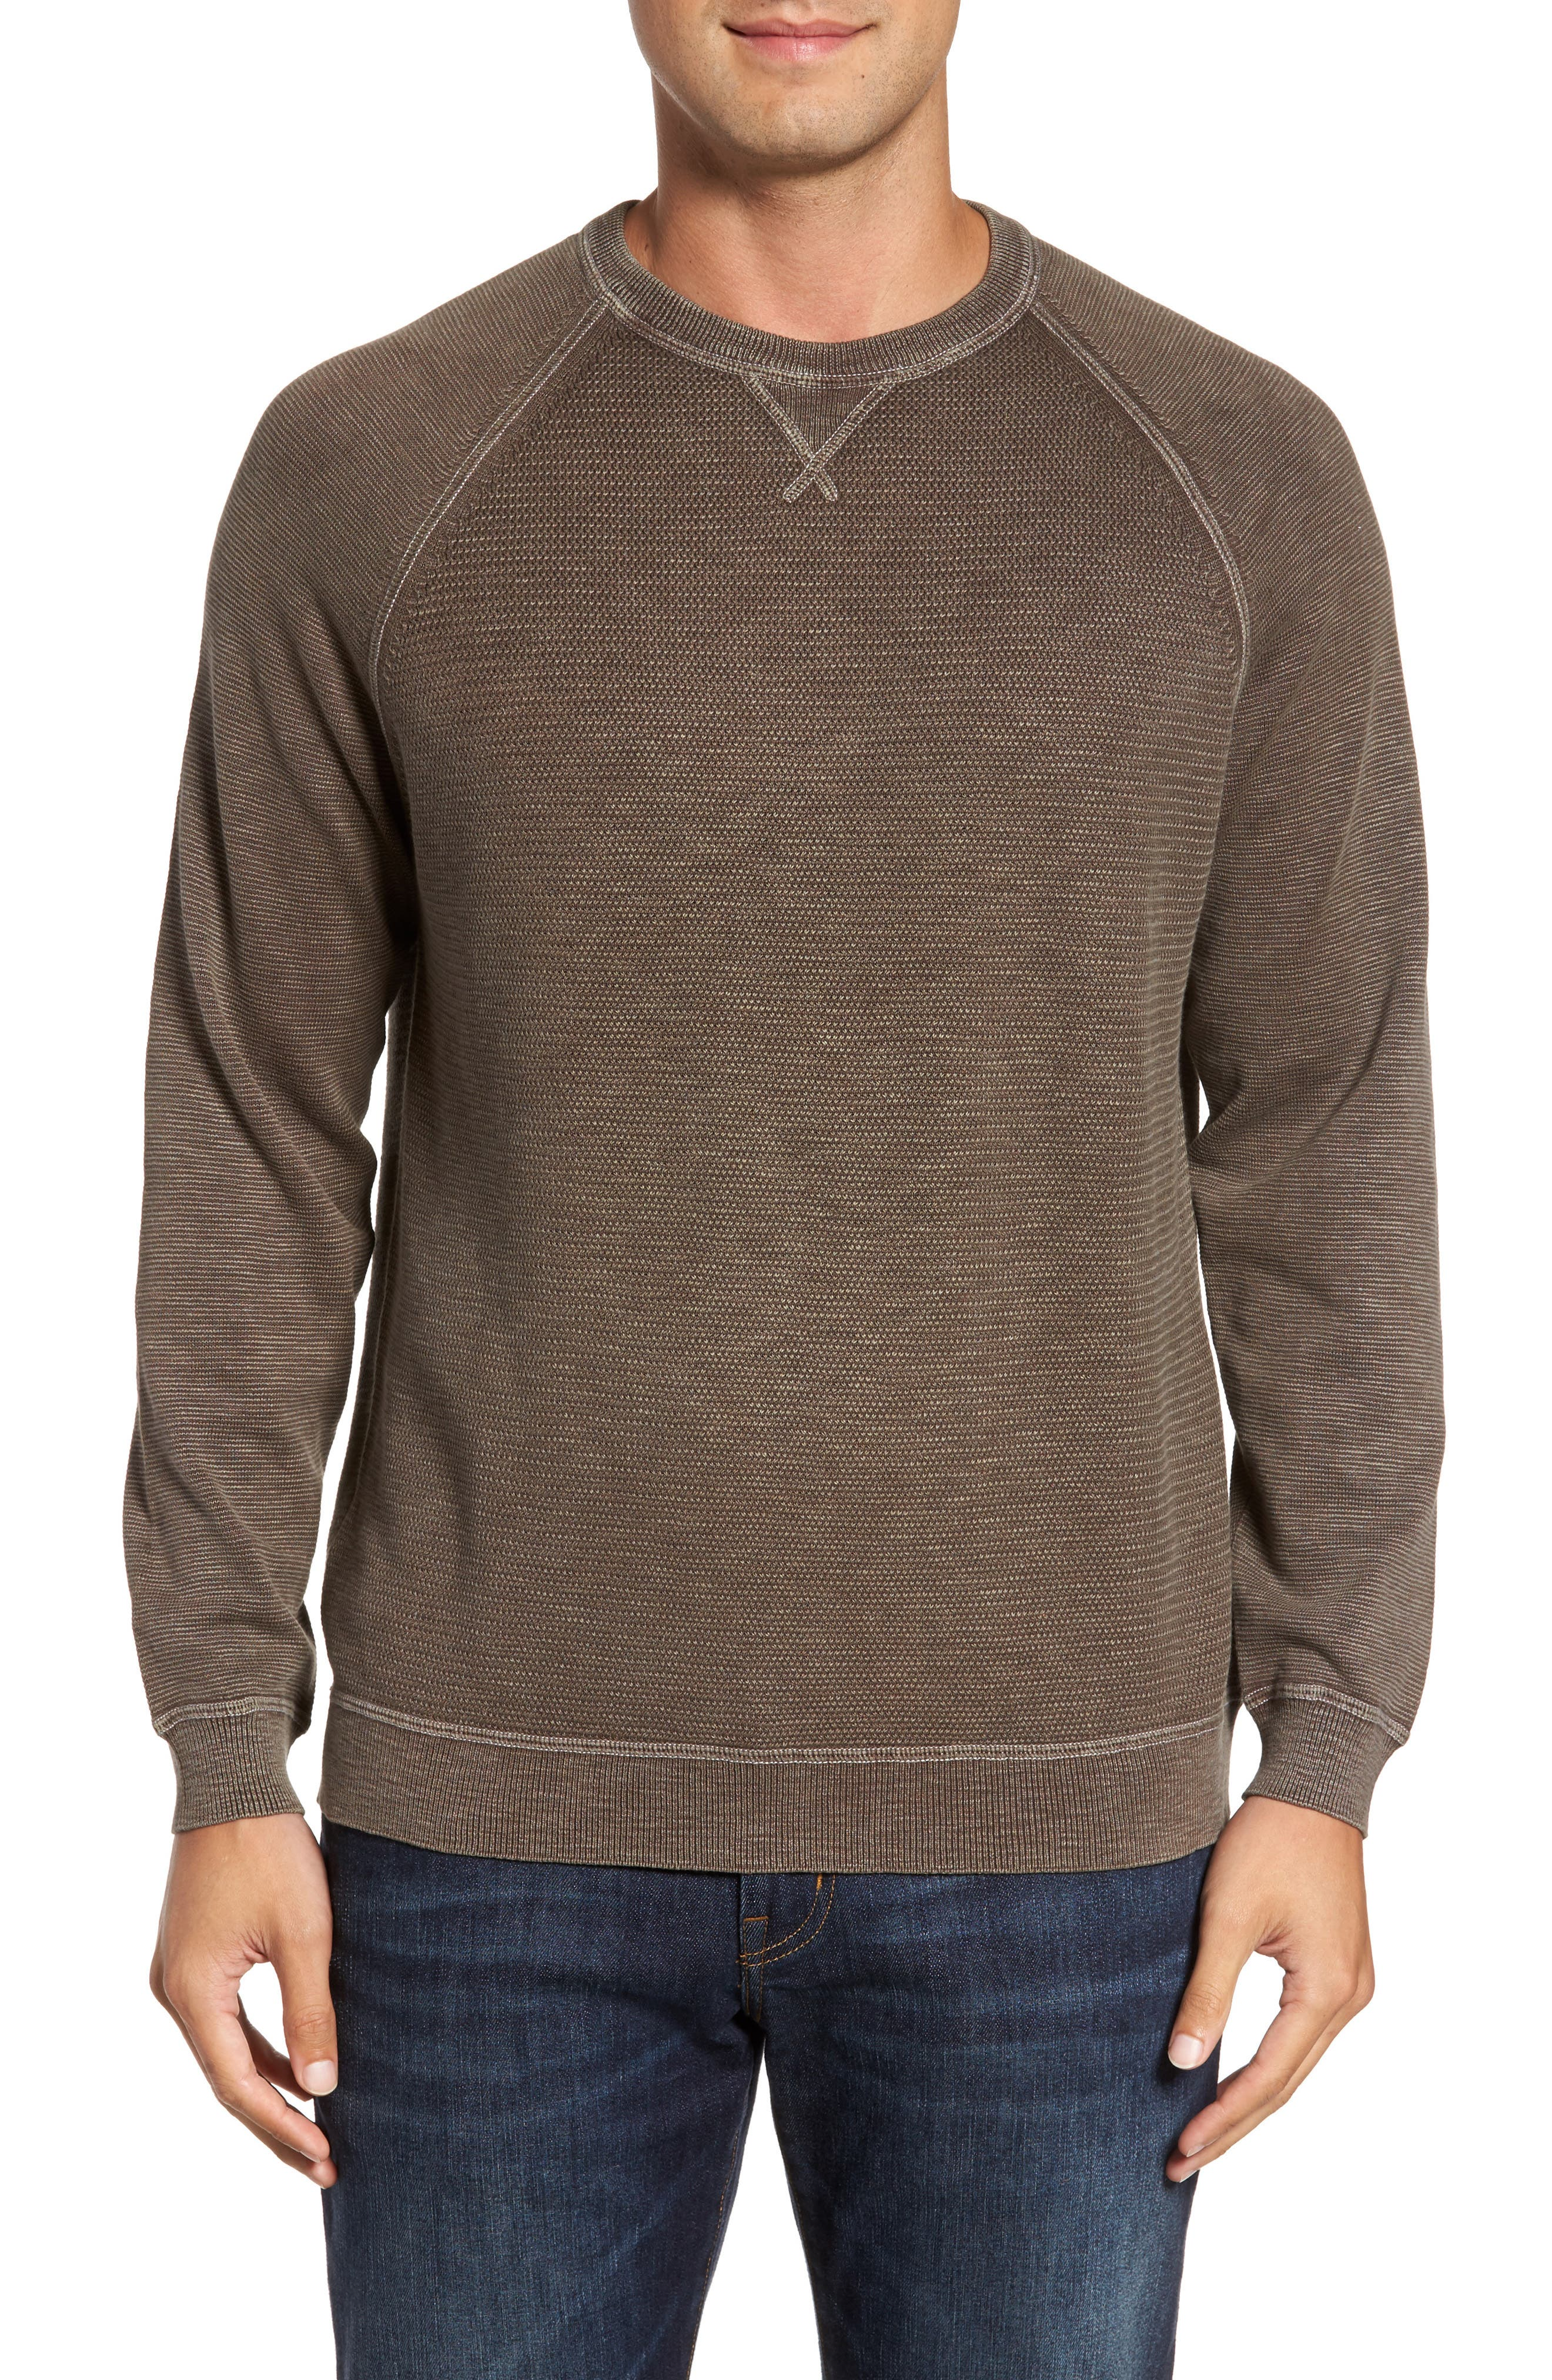 Saltwater Tide Pullover,                             Main thumbnail 1, color,                             200